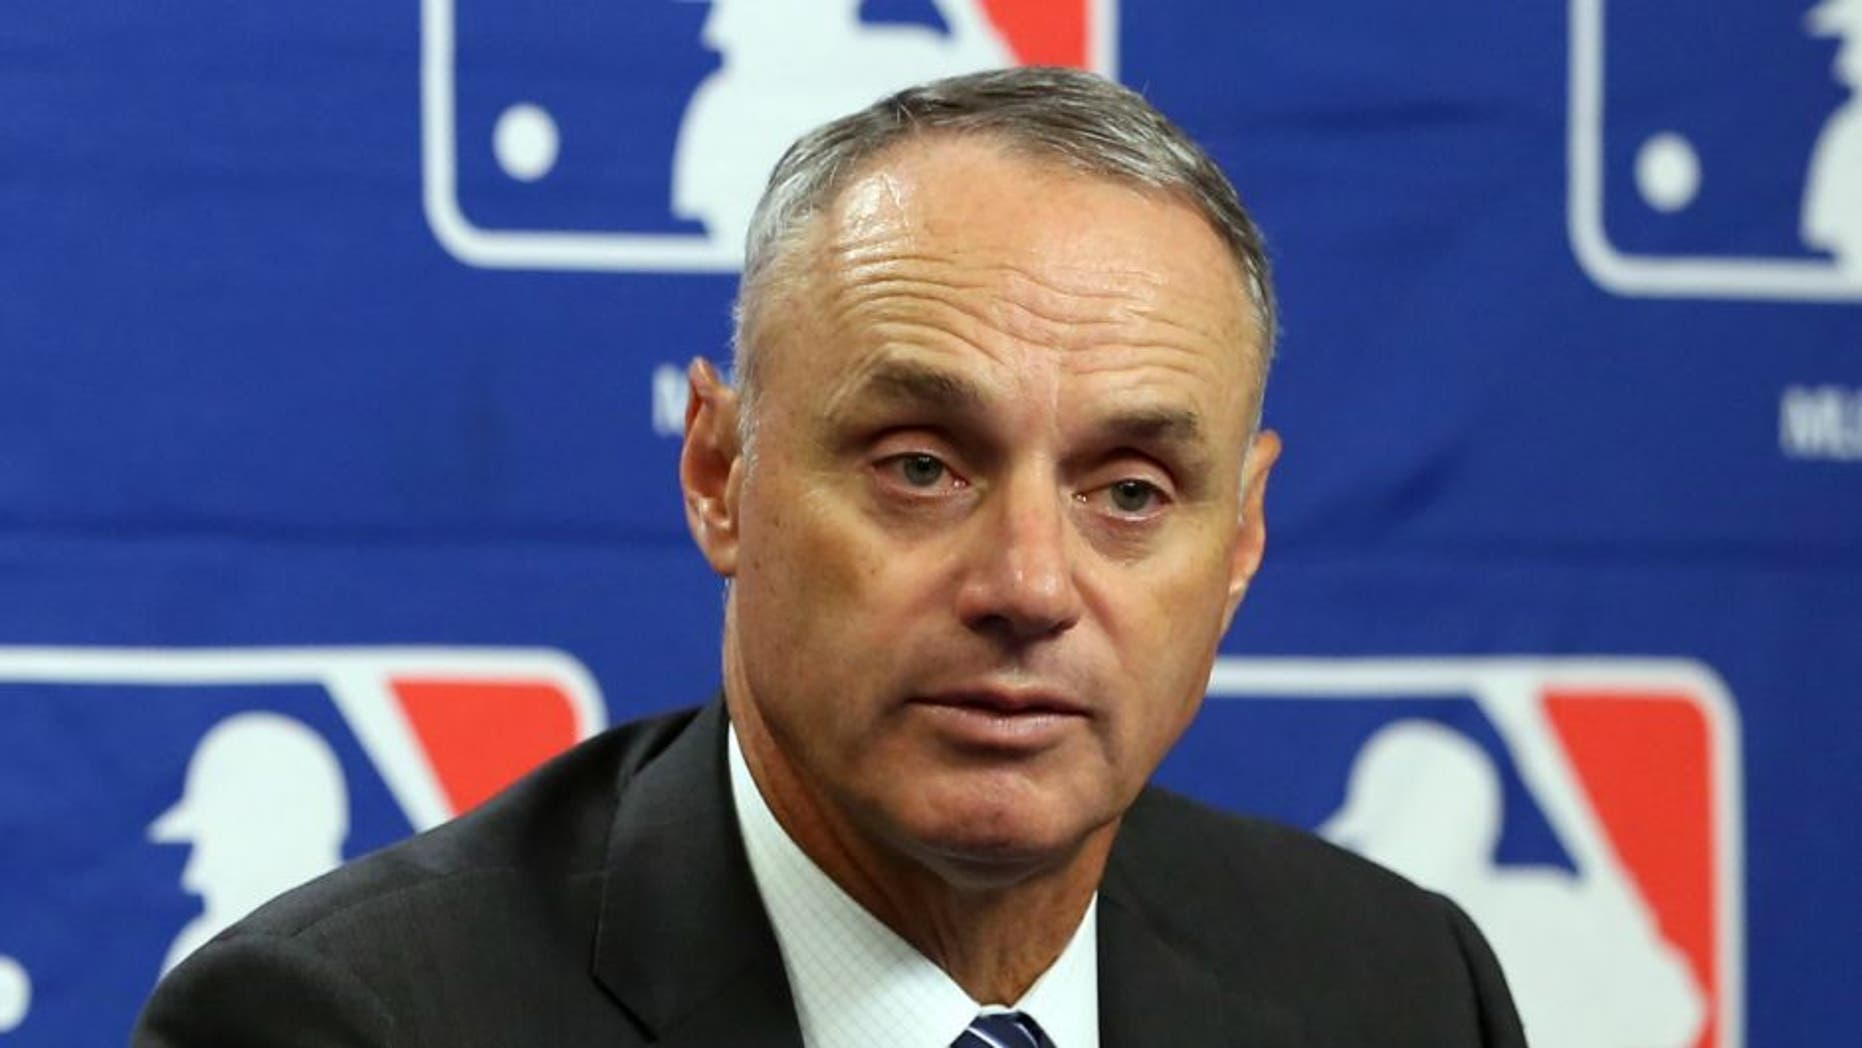 NEW YORK, NY - SEPTEMBER 30: Major League Baseball Commissioner Robert D. Manfred Jr. speaks during the 2015 Sports Diversity & Inclusion Symposium at Citi Field on Wednesday, September 30, 2015 in the Queens borough of New York City. (Photo by Alex Trautwig/MLB Photos via Getty Images)